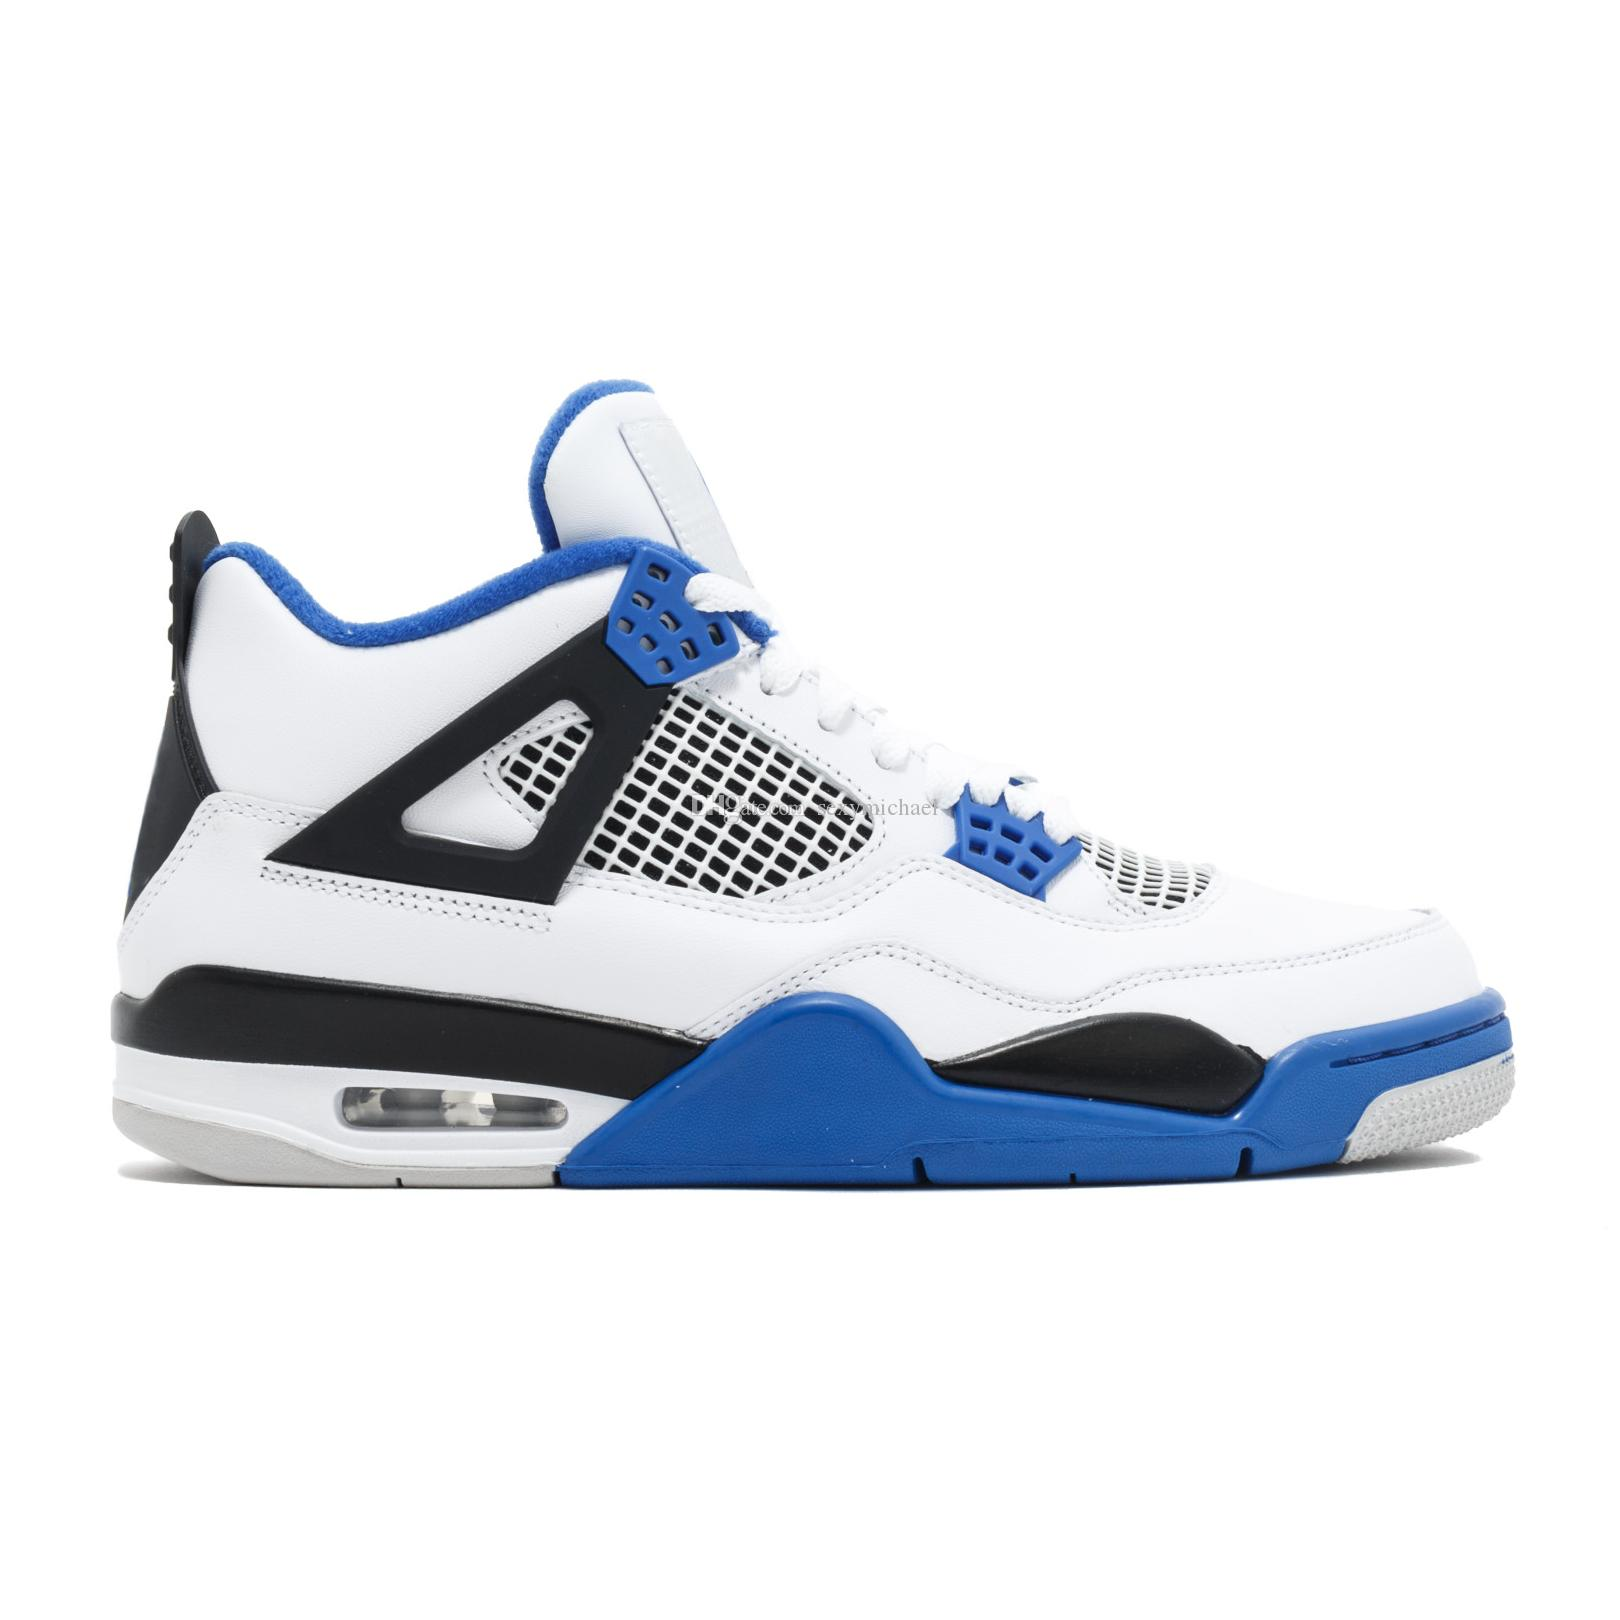 4 Motorsport sneaker 4s Basketball Shoes high quality New 2019 man women trainers leather Sneakers with Box